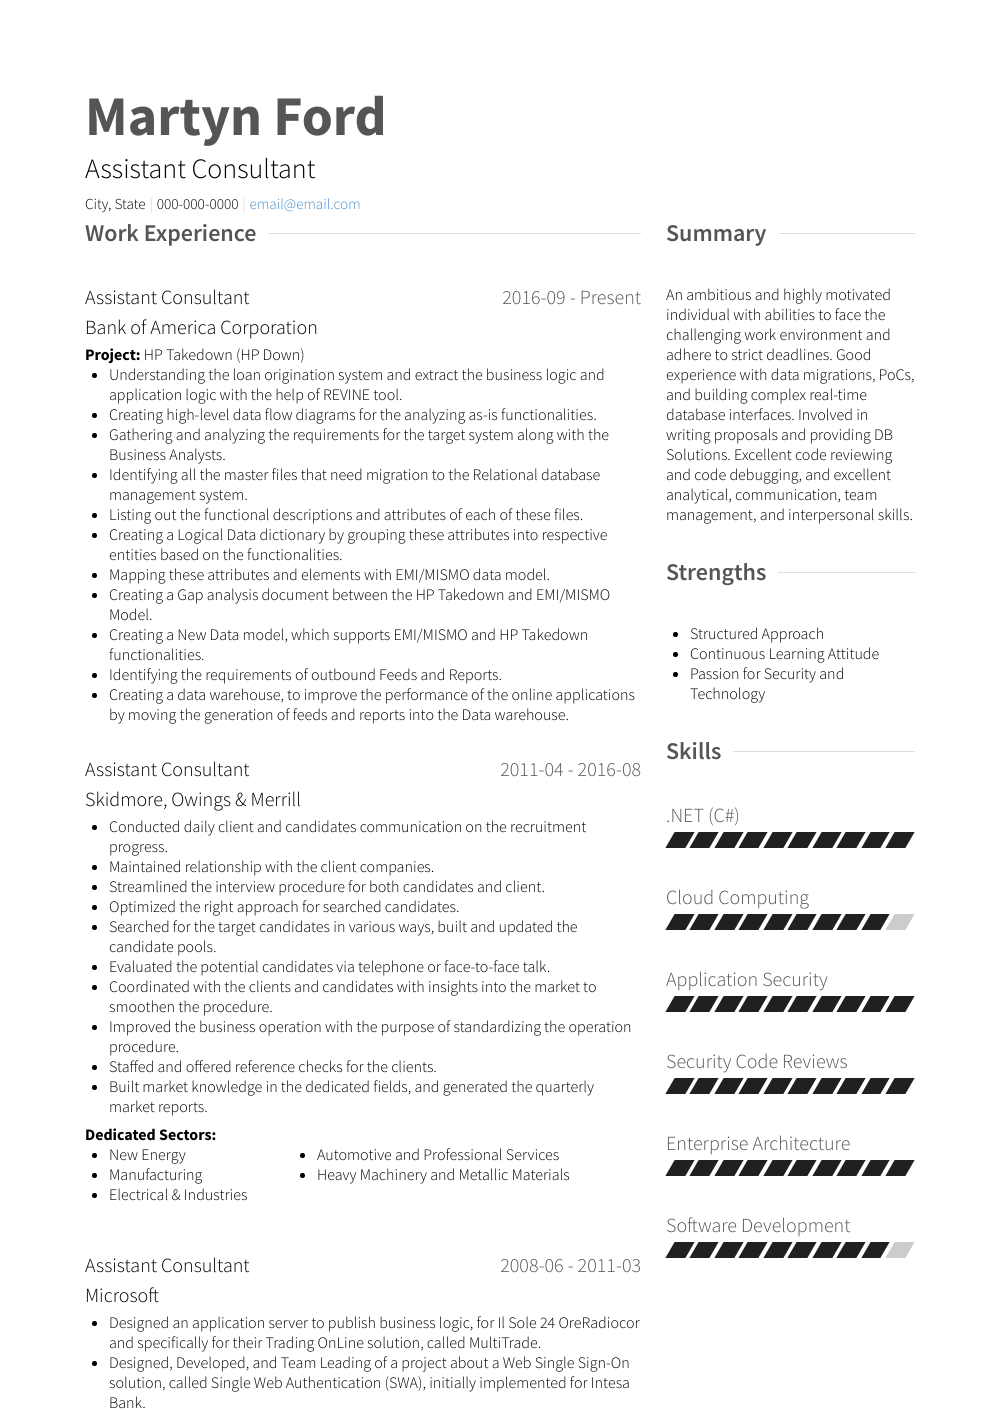 sample resume for single sign on